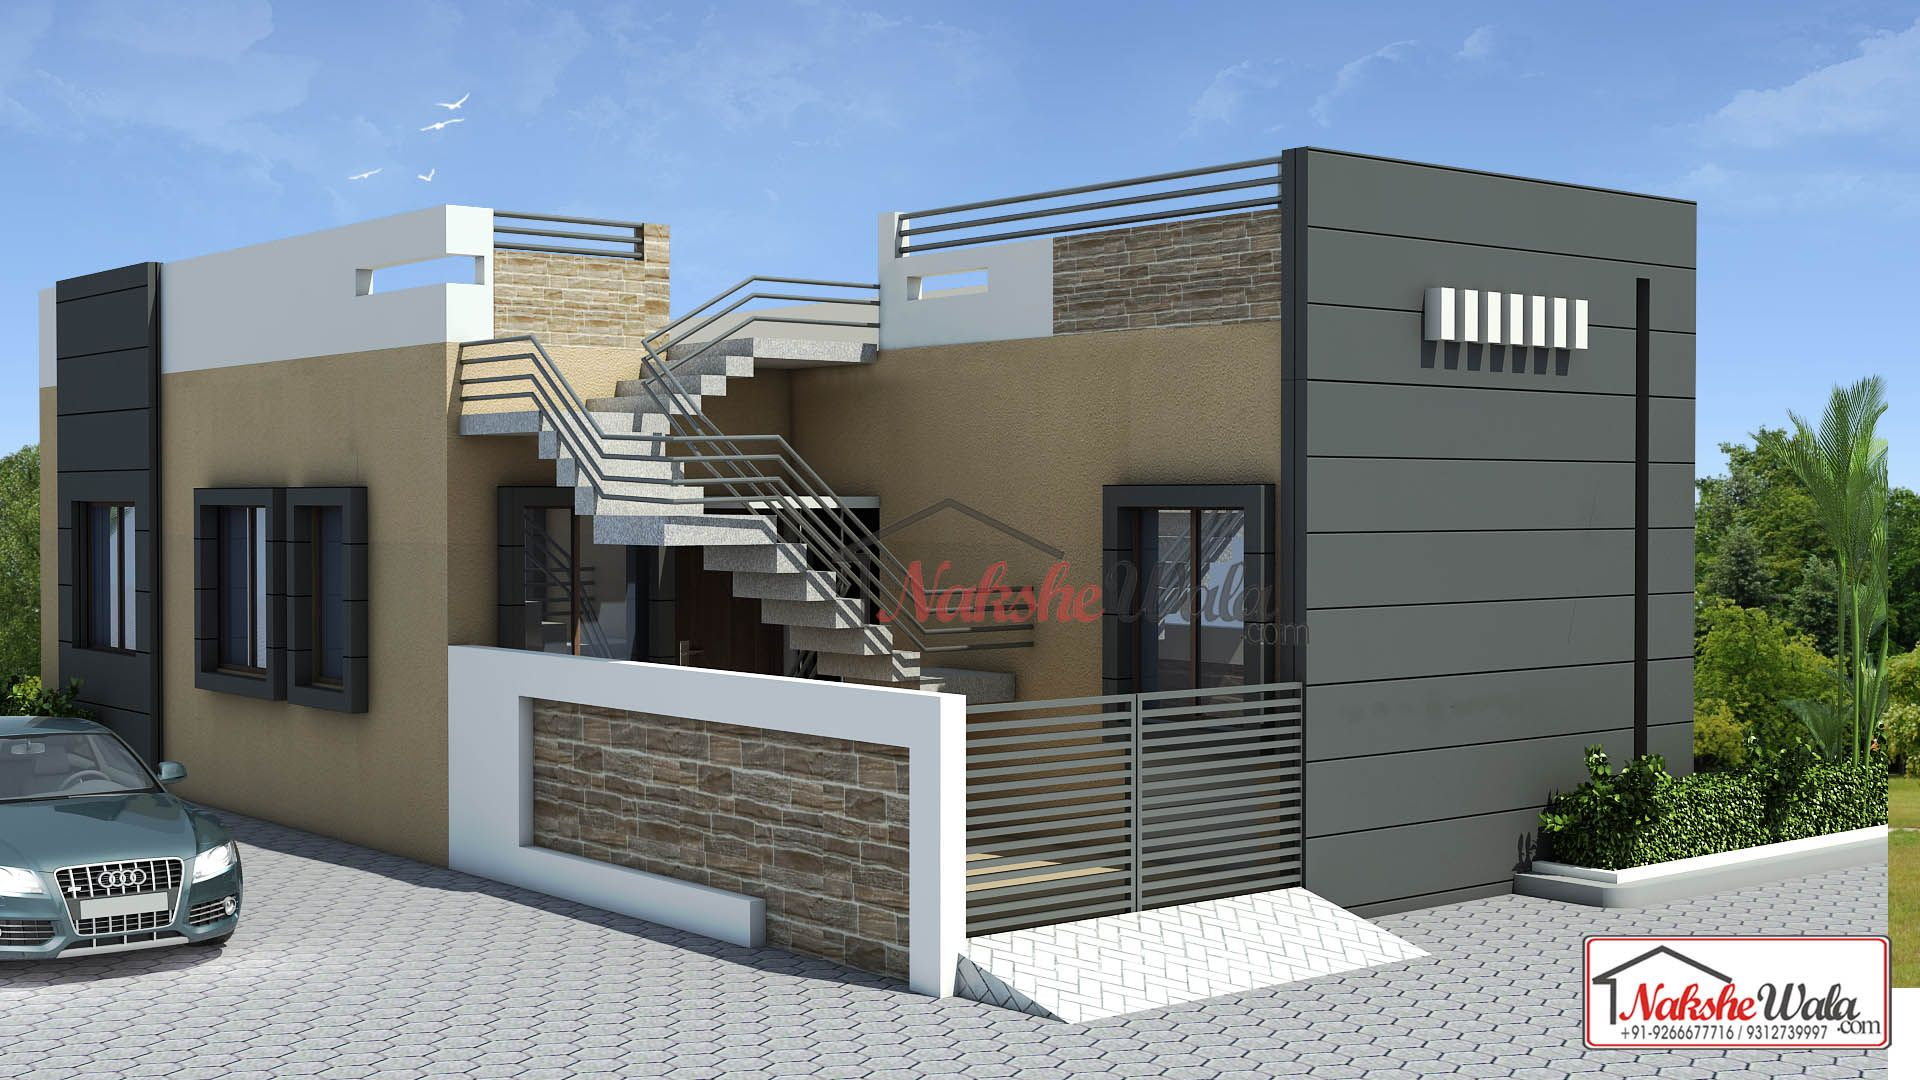 f9abff66f100263a20723830522b7718 - 20+ Front Elevation Designs For Small Houses Single Floor Images